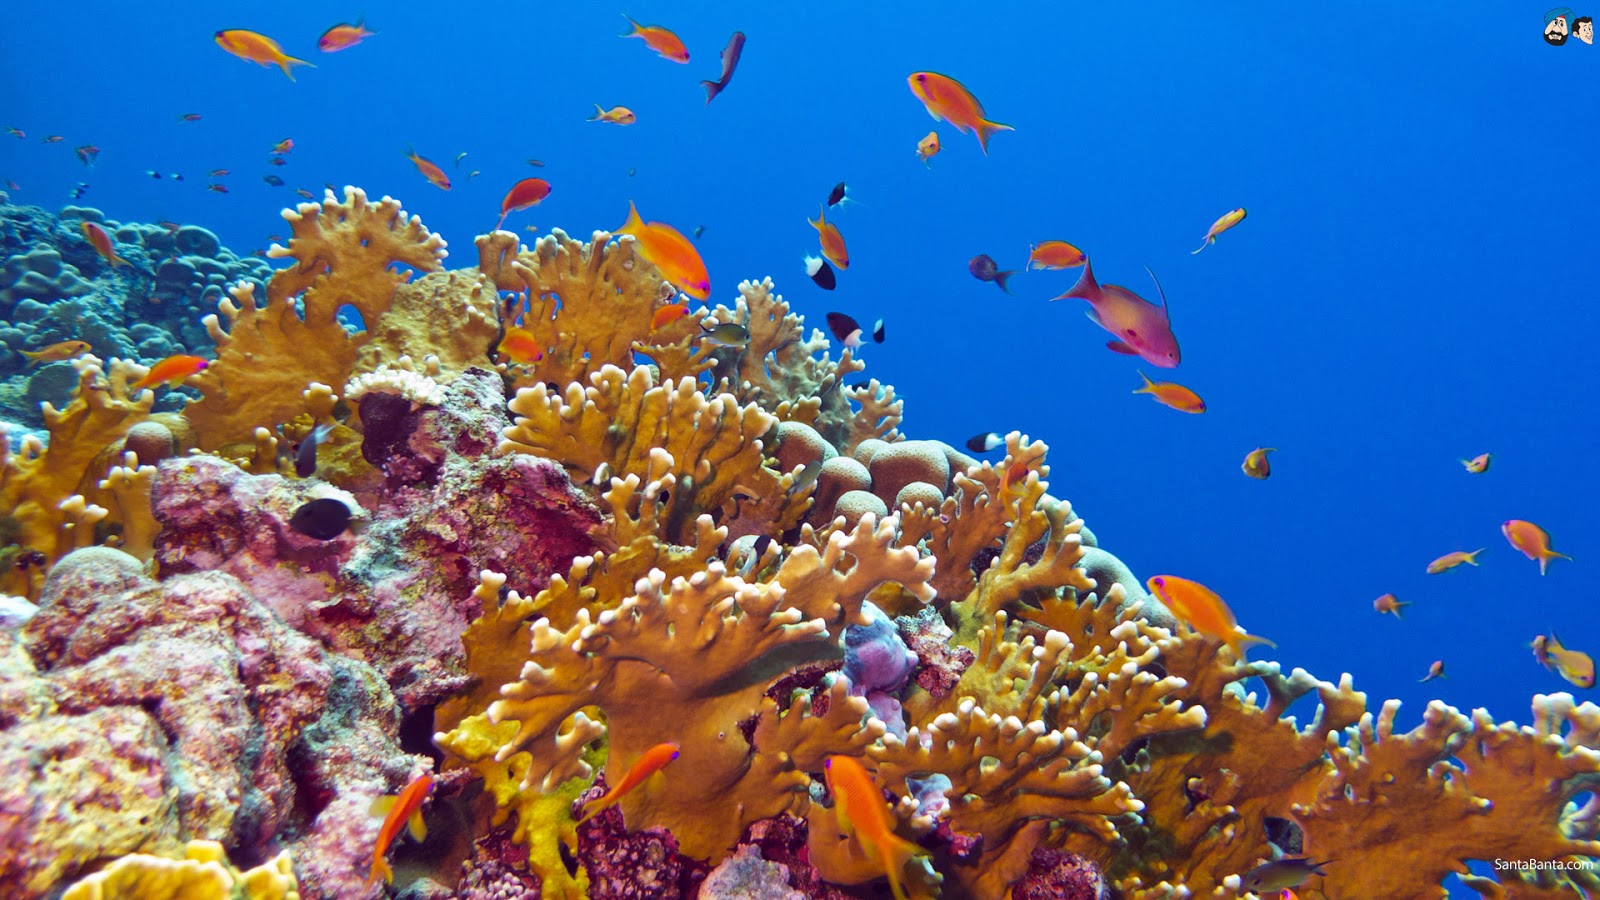 Coral Reef Wallpaper Hd Aquatic Hd Wallpapers Most Beautiful Places In The World